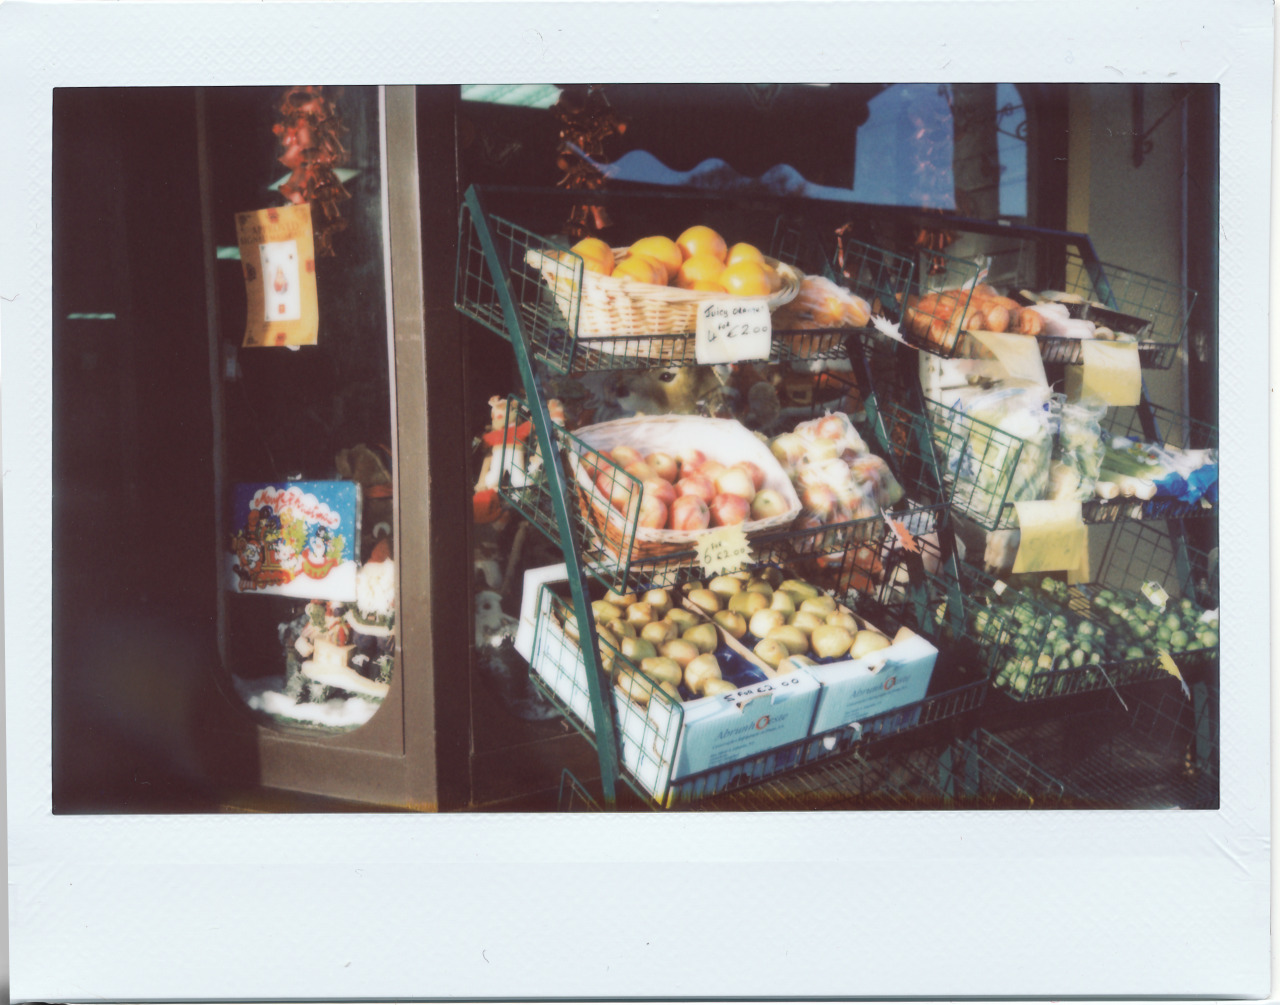 So I got a Fuji Instant 210 for Christmas or my birthday not sure which and I can honestly say I have not been as excited about photography for a wee while.  This is my 4th exposure of  fruit stall in the village I live.